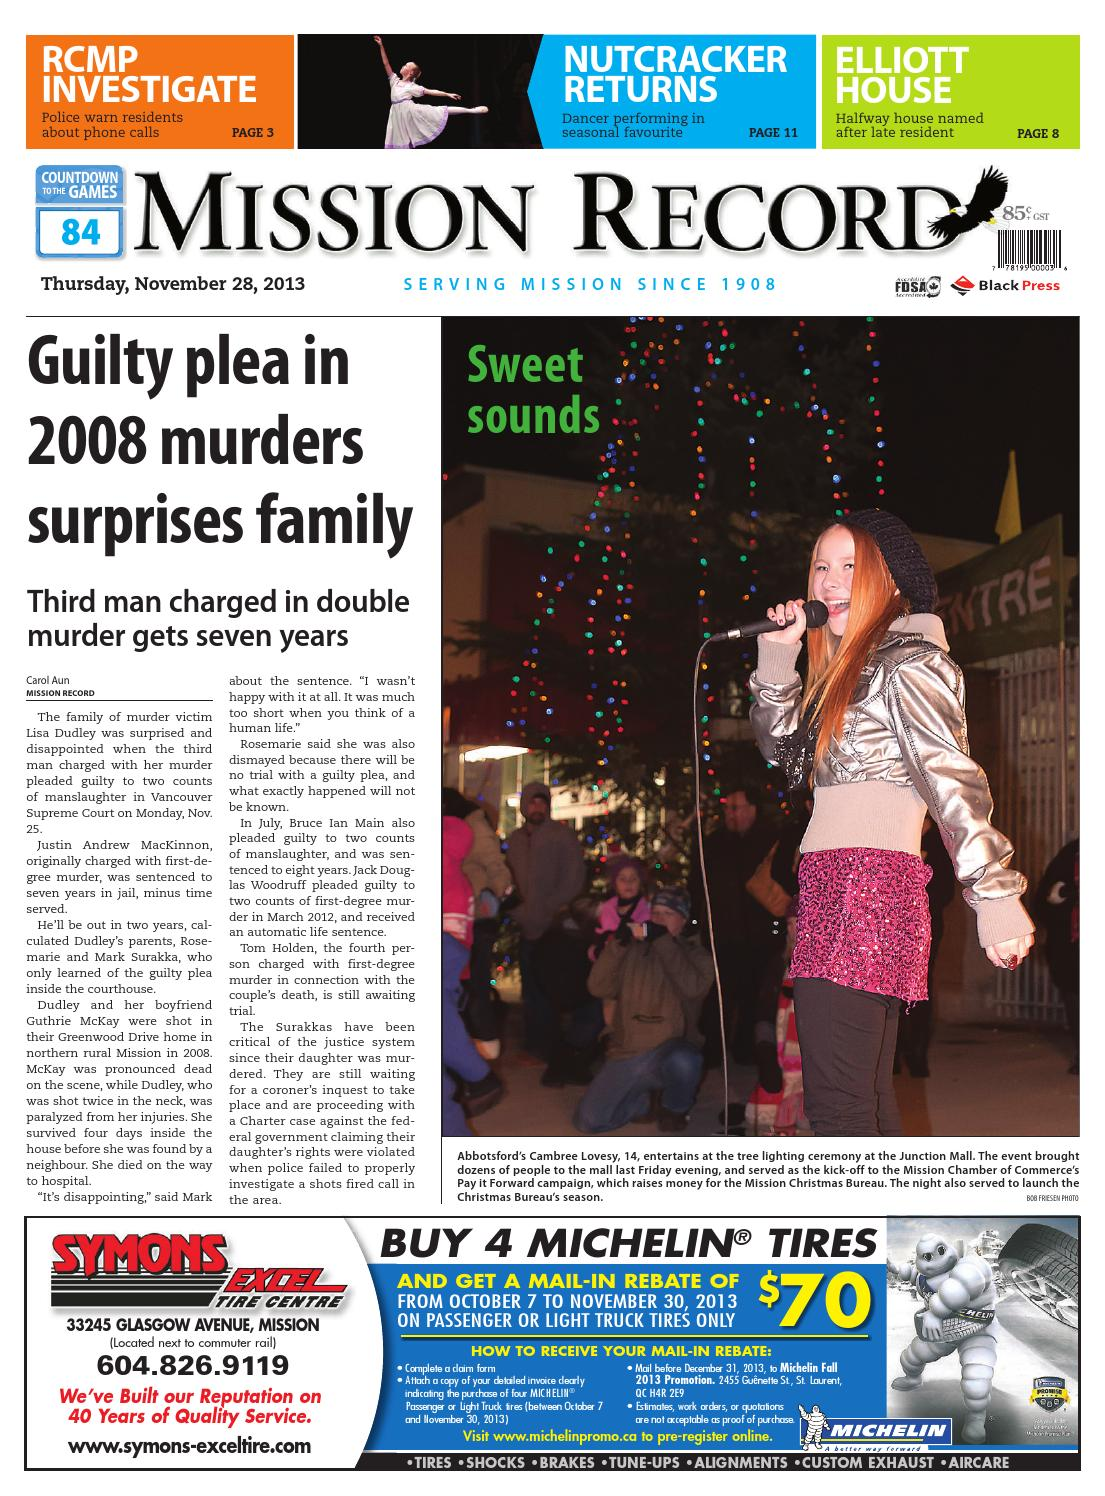 Mission City Record November 28 2013 By Black Press Issuu Donwload Solve Elec 25 Free Electronic Electric Tool Xtronic